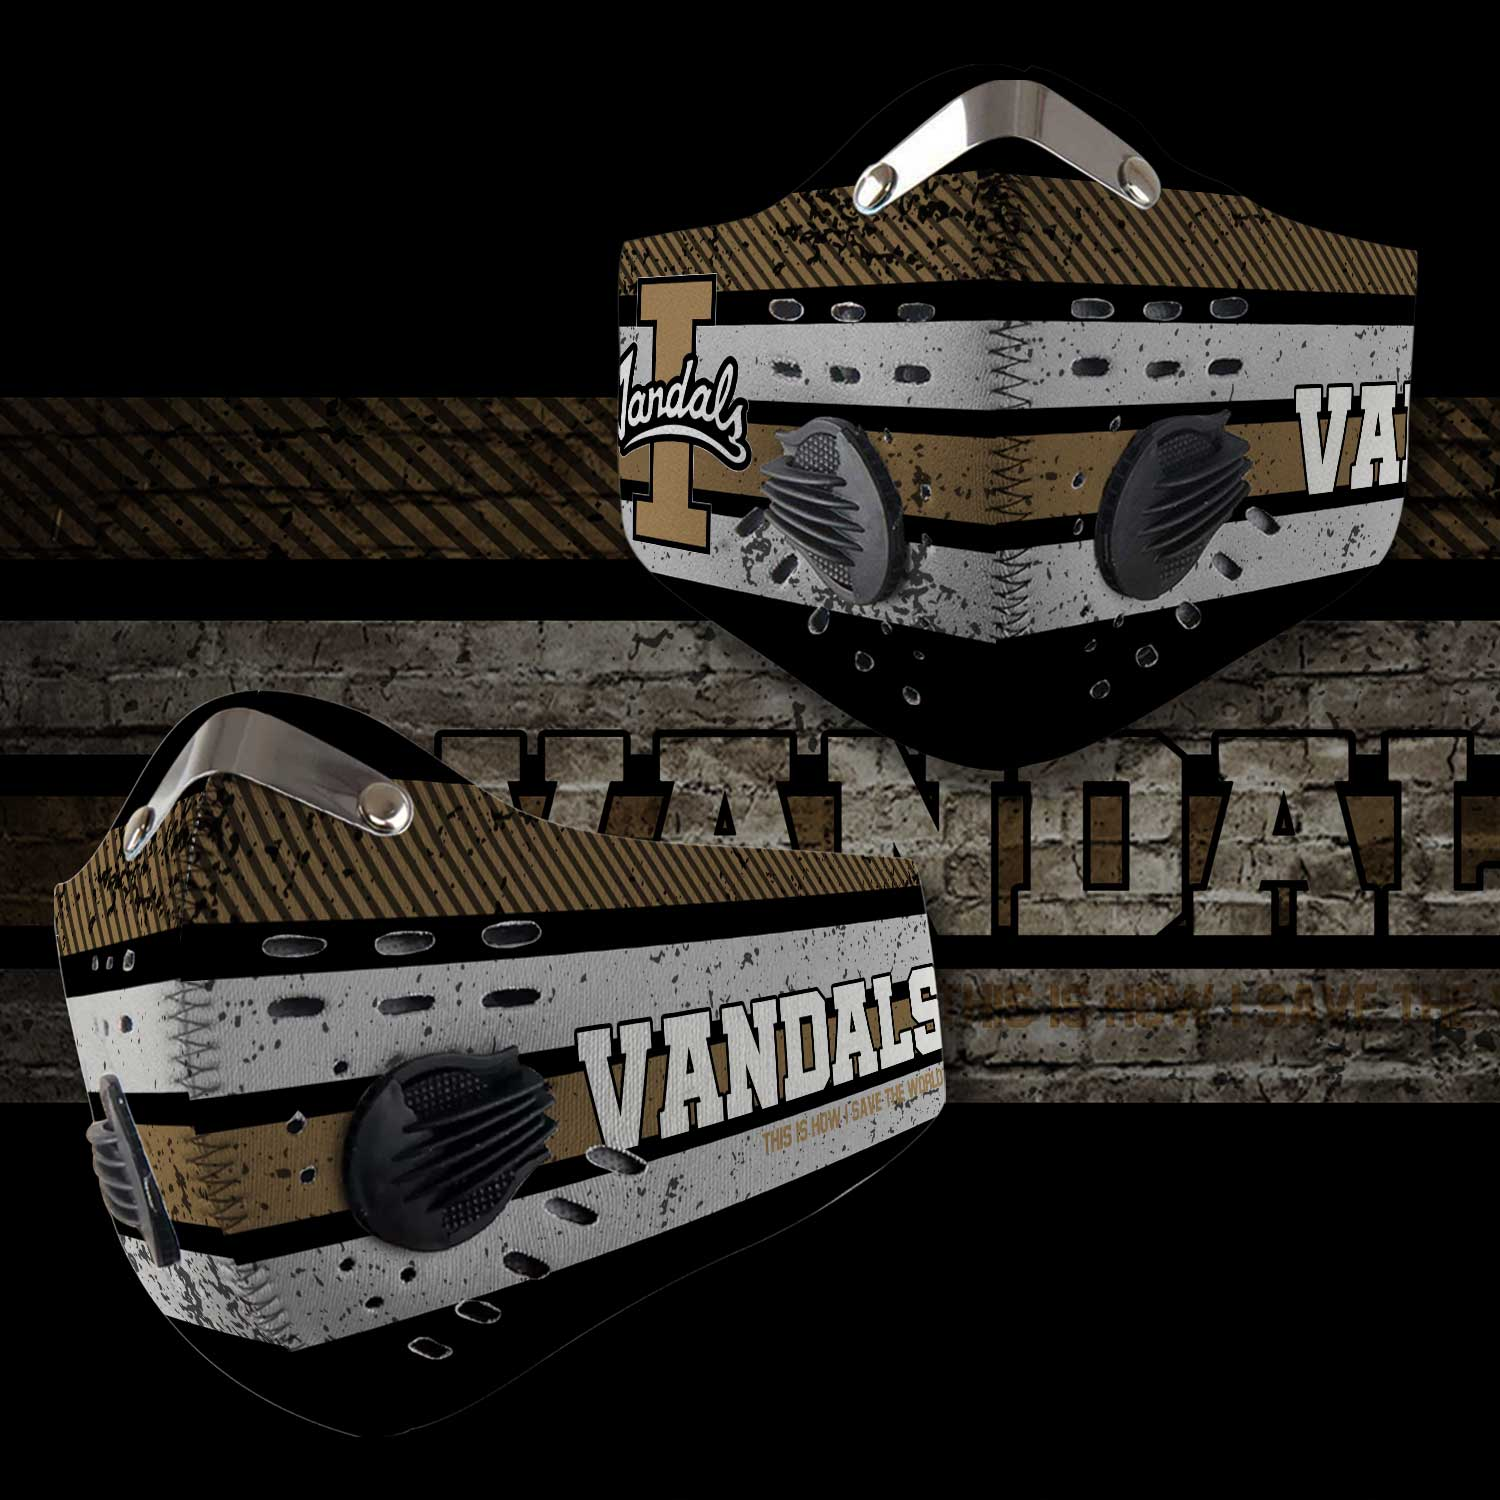 Idaho vandals football this is how i save the world face mask 1